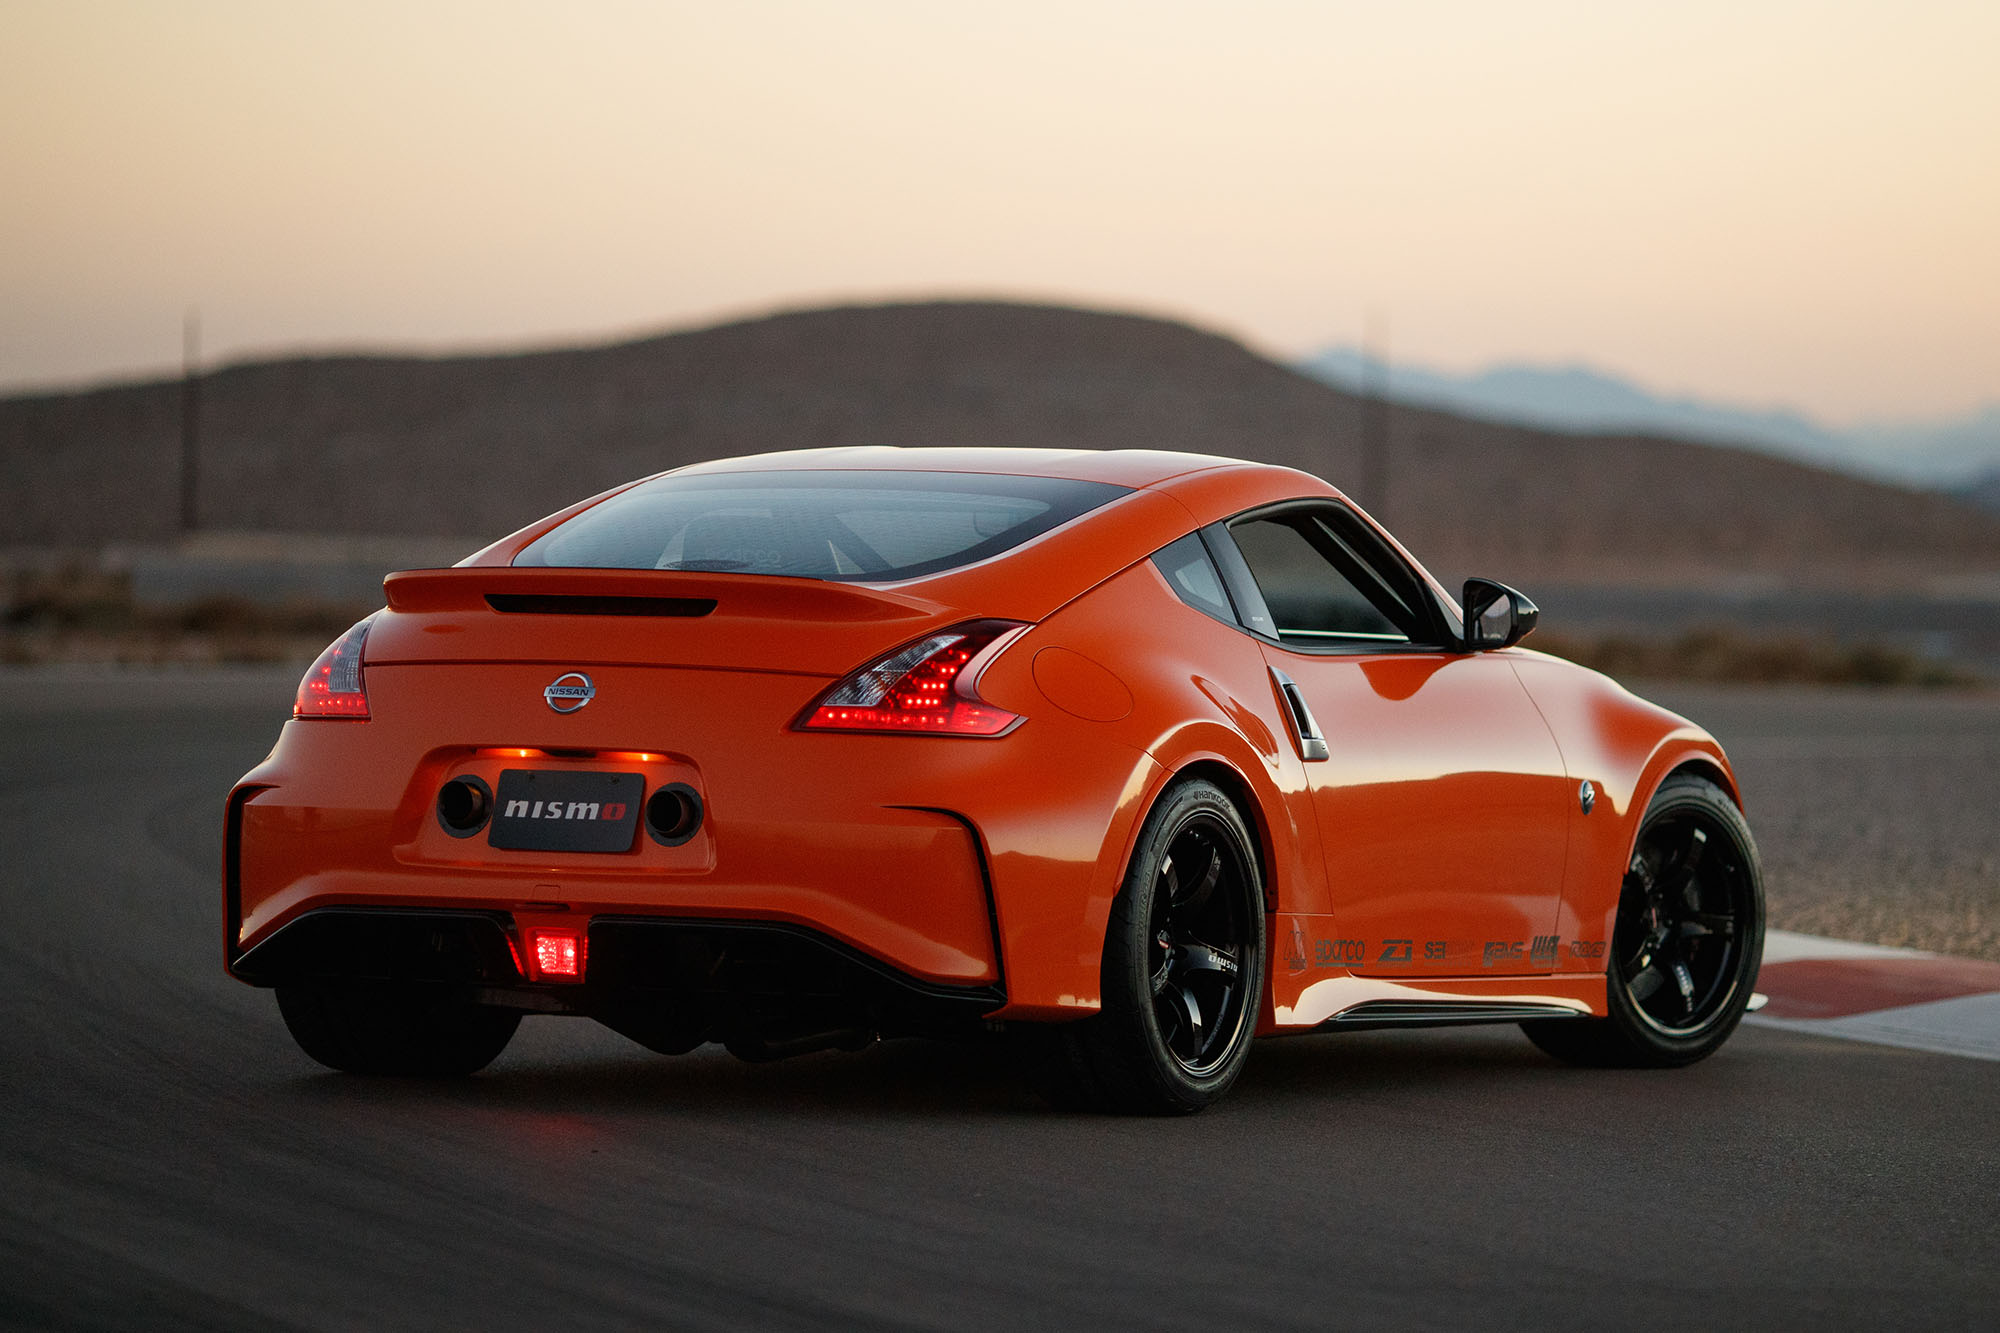 Turbo 350 Transmission Specs >> Nissan 370Z NISMO with a Twin-Turbo VR30DDTT V6 – Engine ...